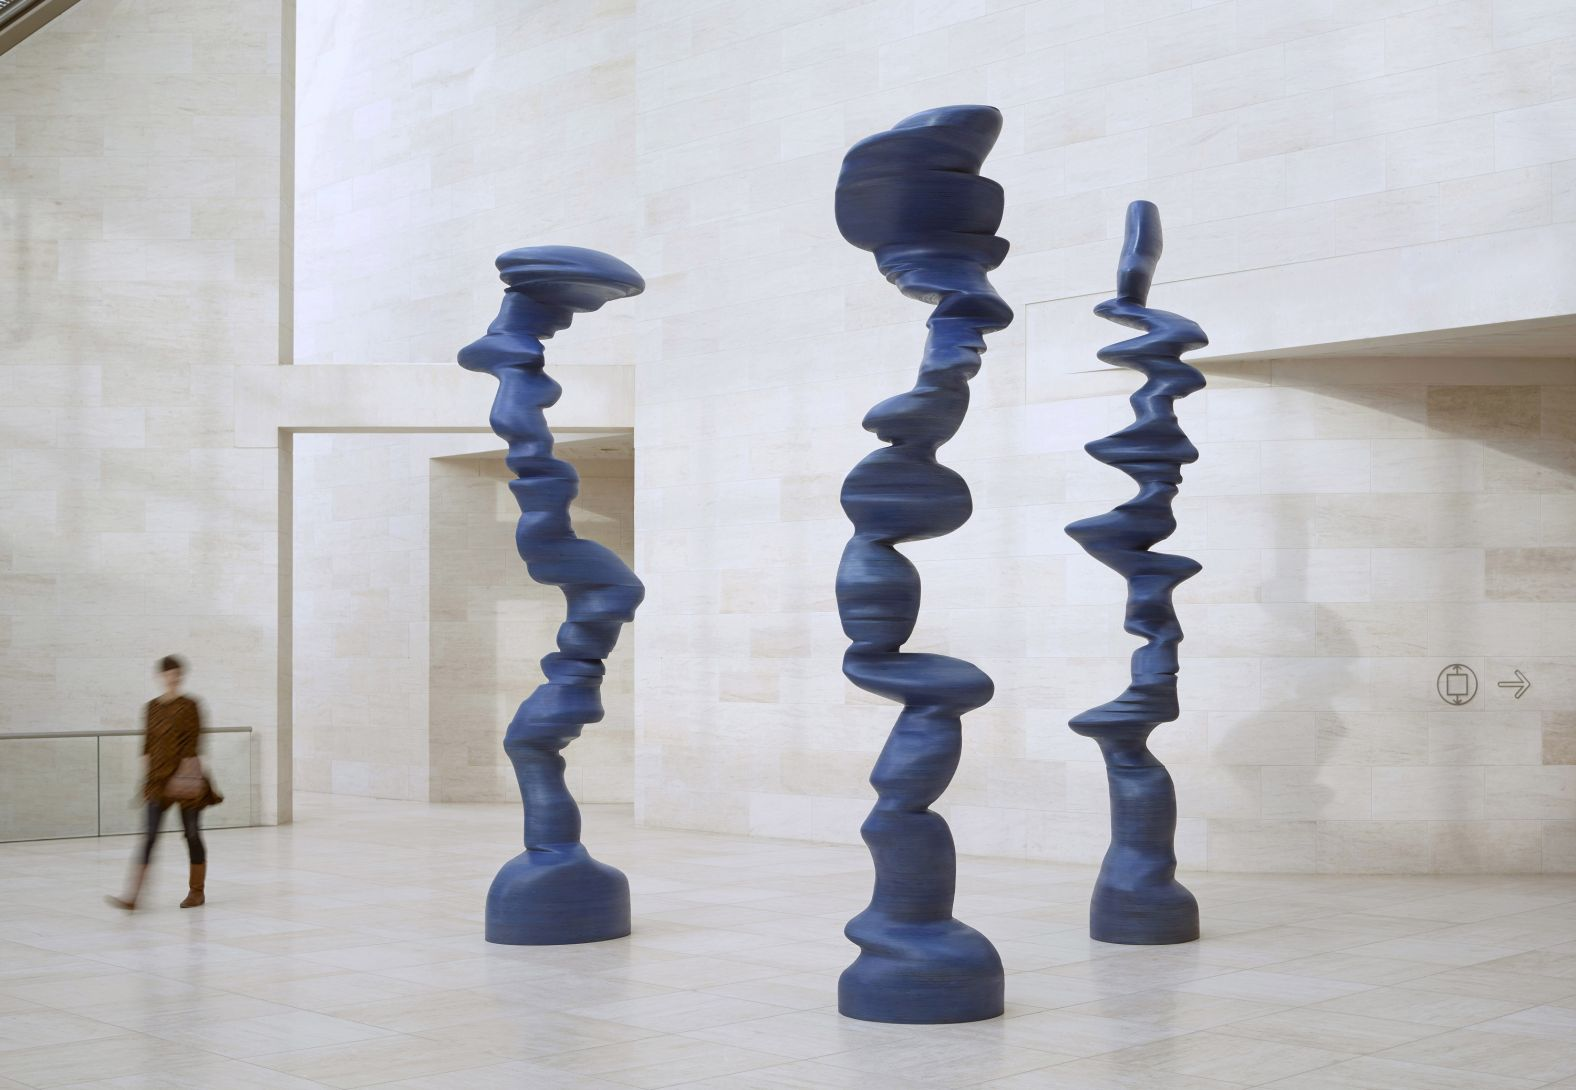 Tony Cragg at MUDAM Luxembourg